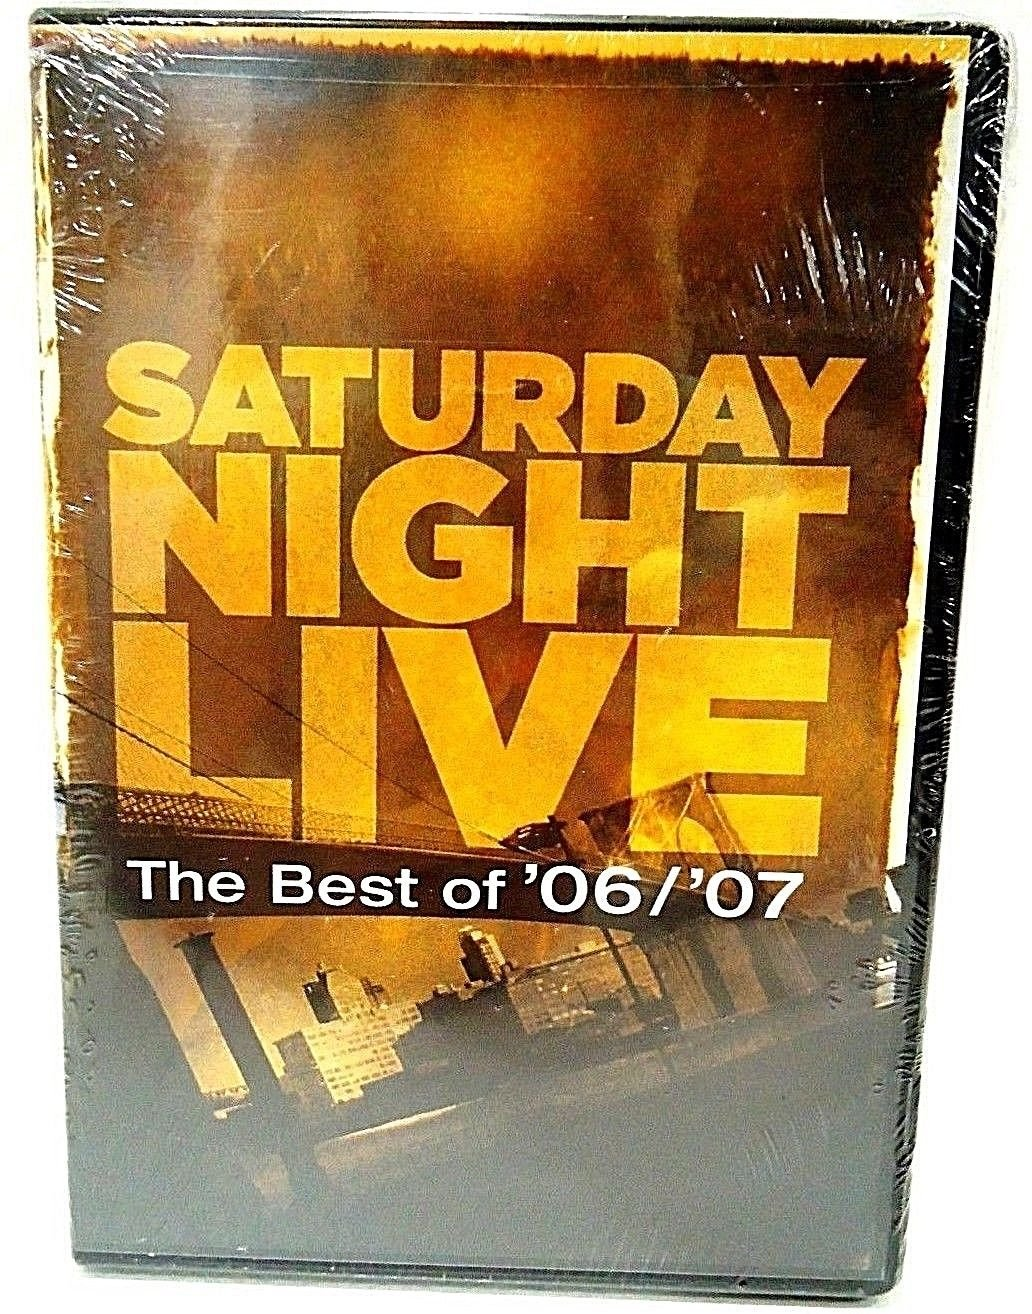 SATURDAY NIGHT LIVE - THE BEST OF '06/'07 - DVD - SETH MEYERS - NEW - COMEDY